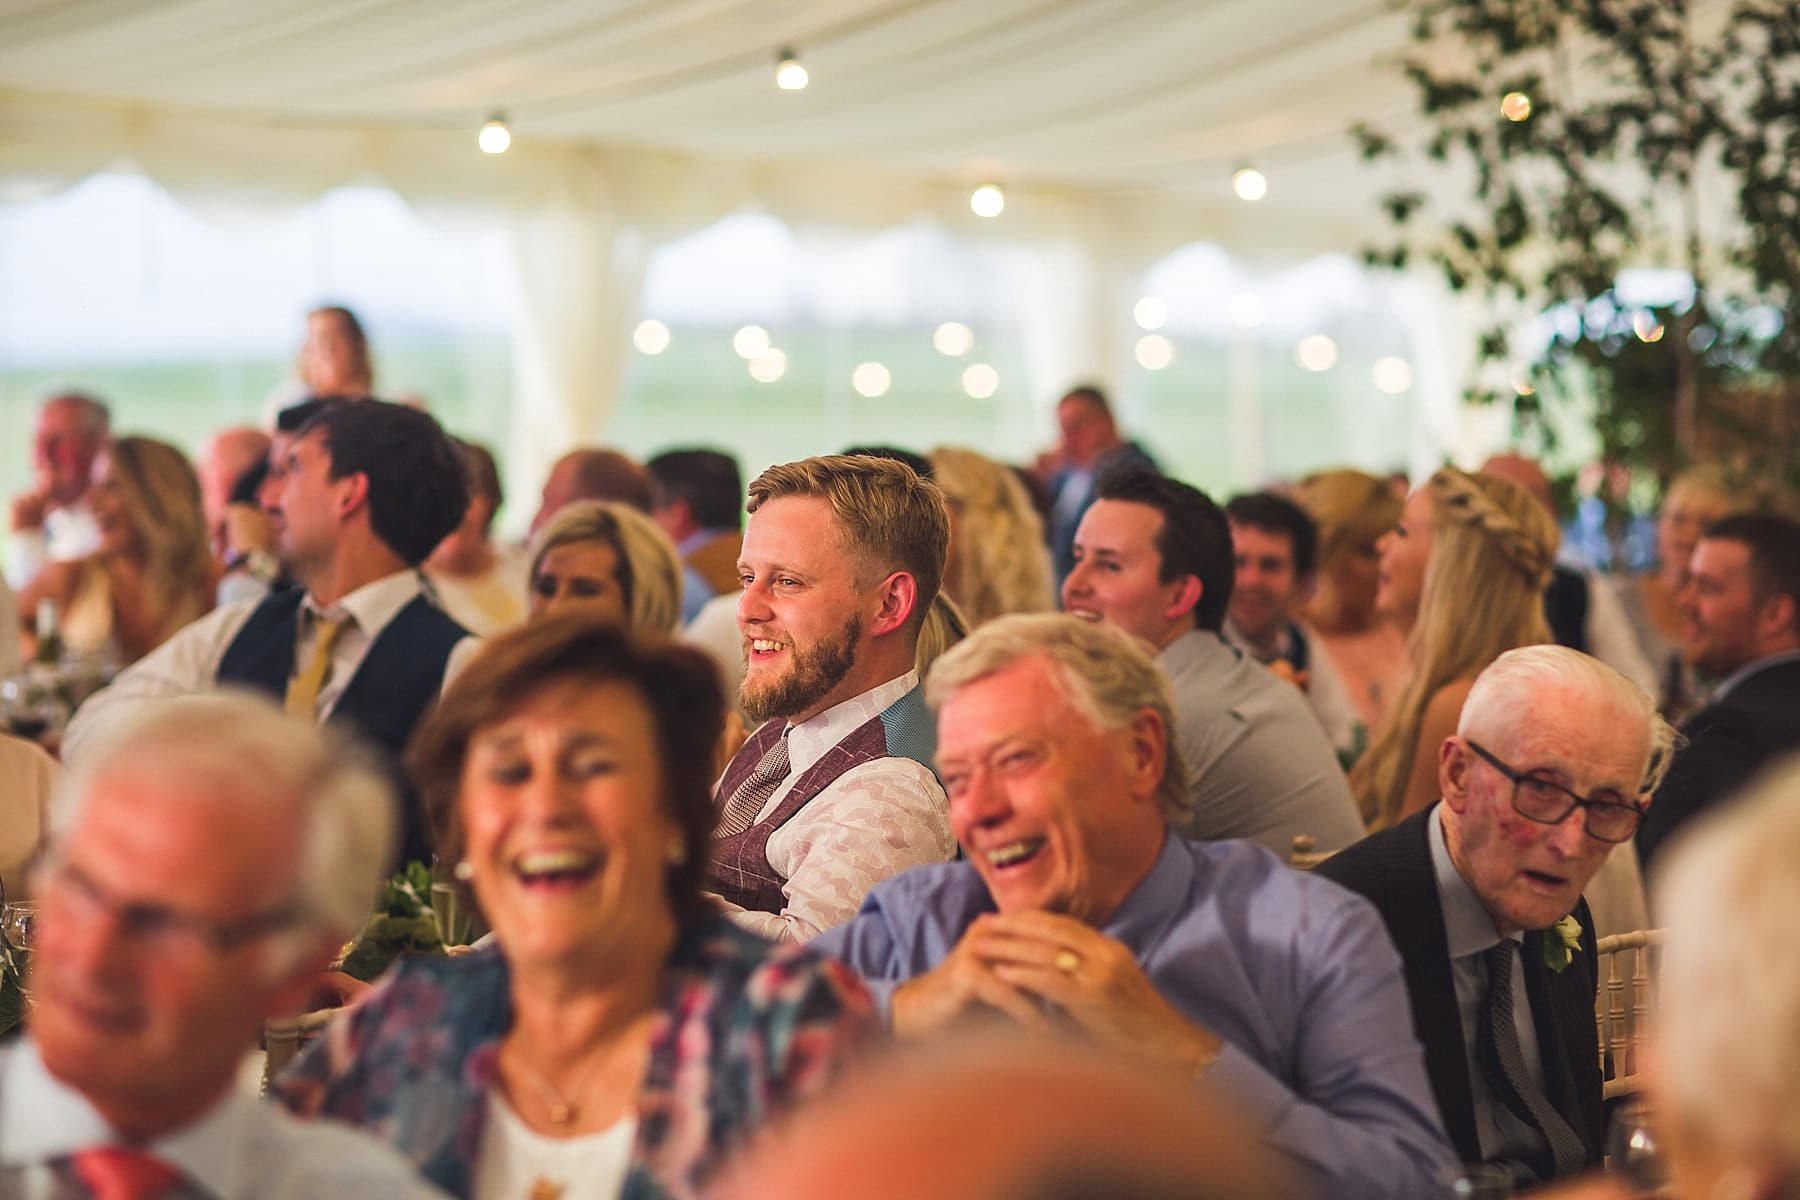 Irish wedding photographer,fun,dancing,marquee inspiration,laughter,bride and groom,